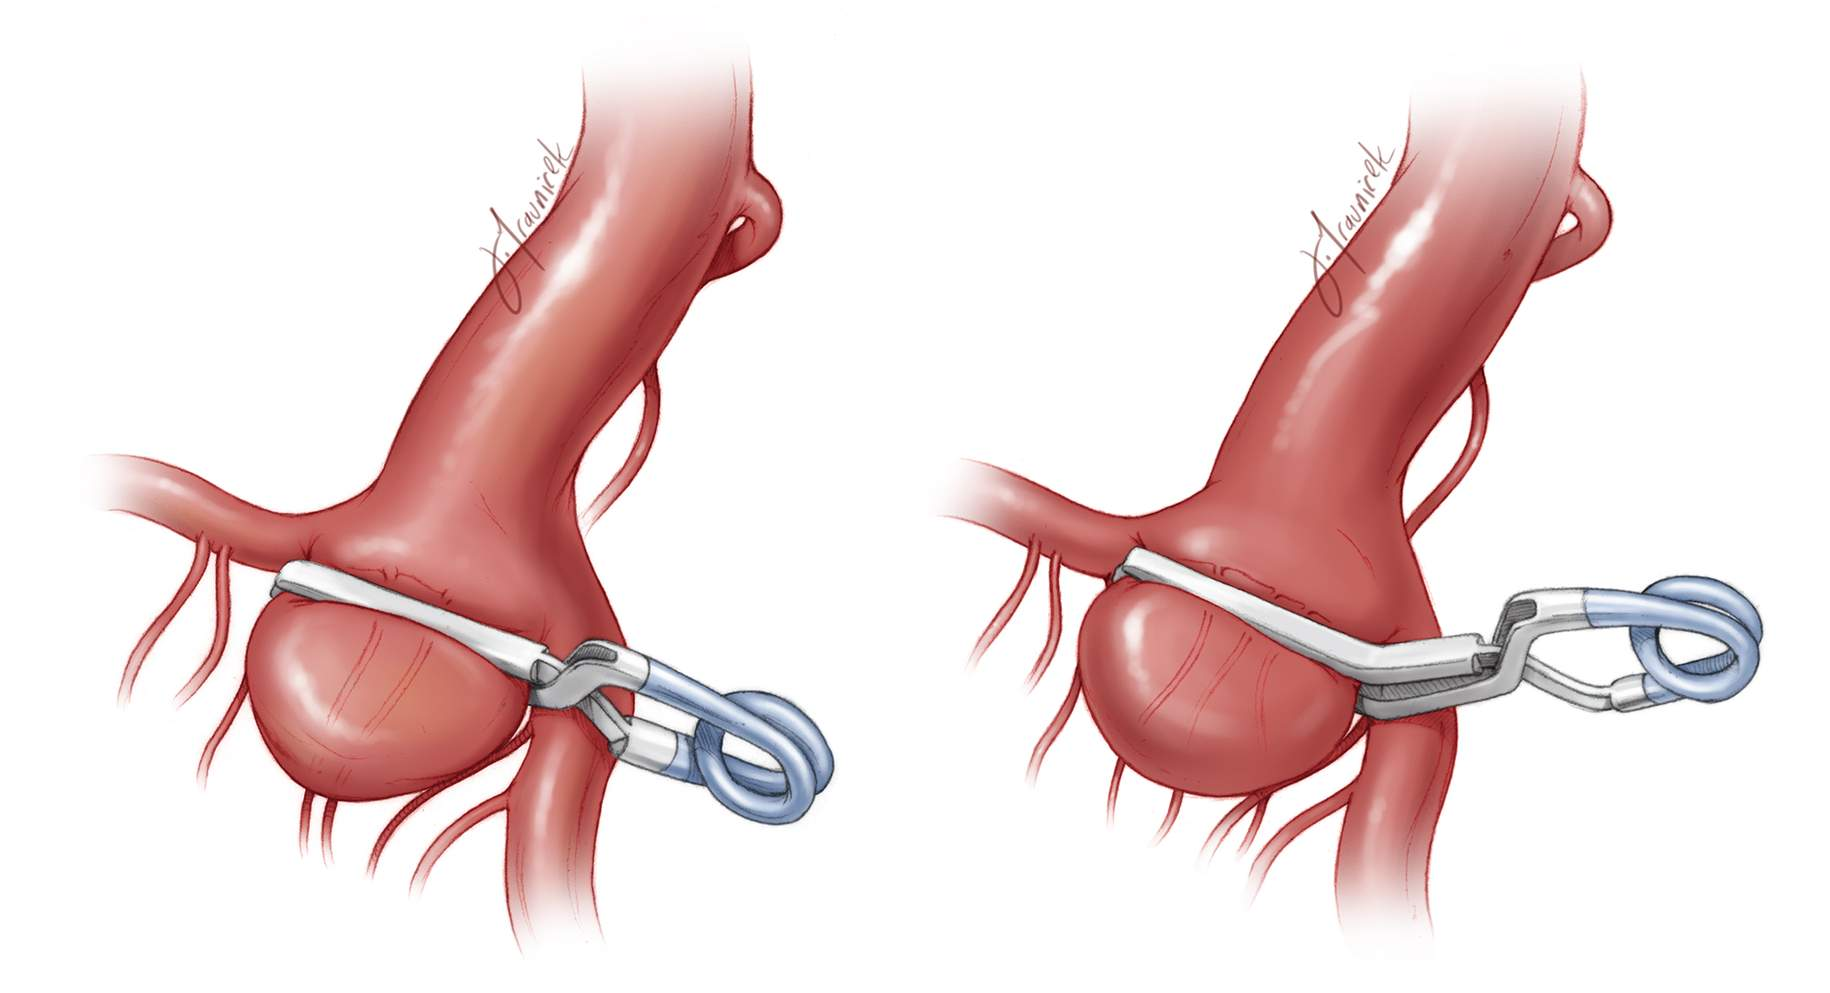 Figure 18: An ICA bifurcation aneurysm was clipped using a simple straight clip (left image) or an angled clip (right image). The angled clip may avoid the MCA branch, ensuring that the hinge of the clip does not kink its lumen.